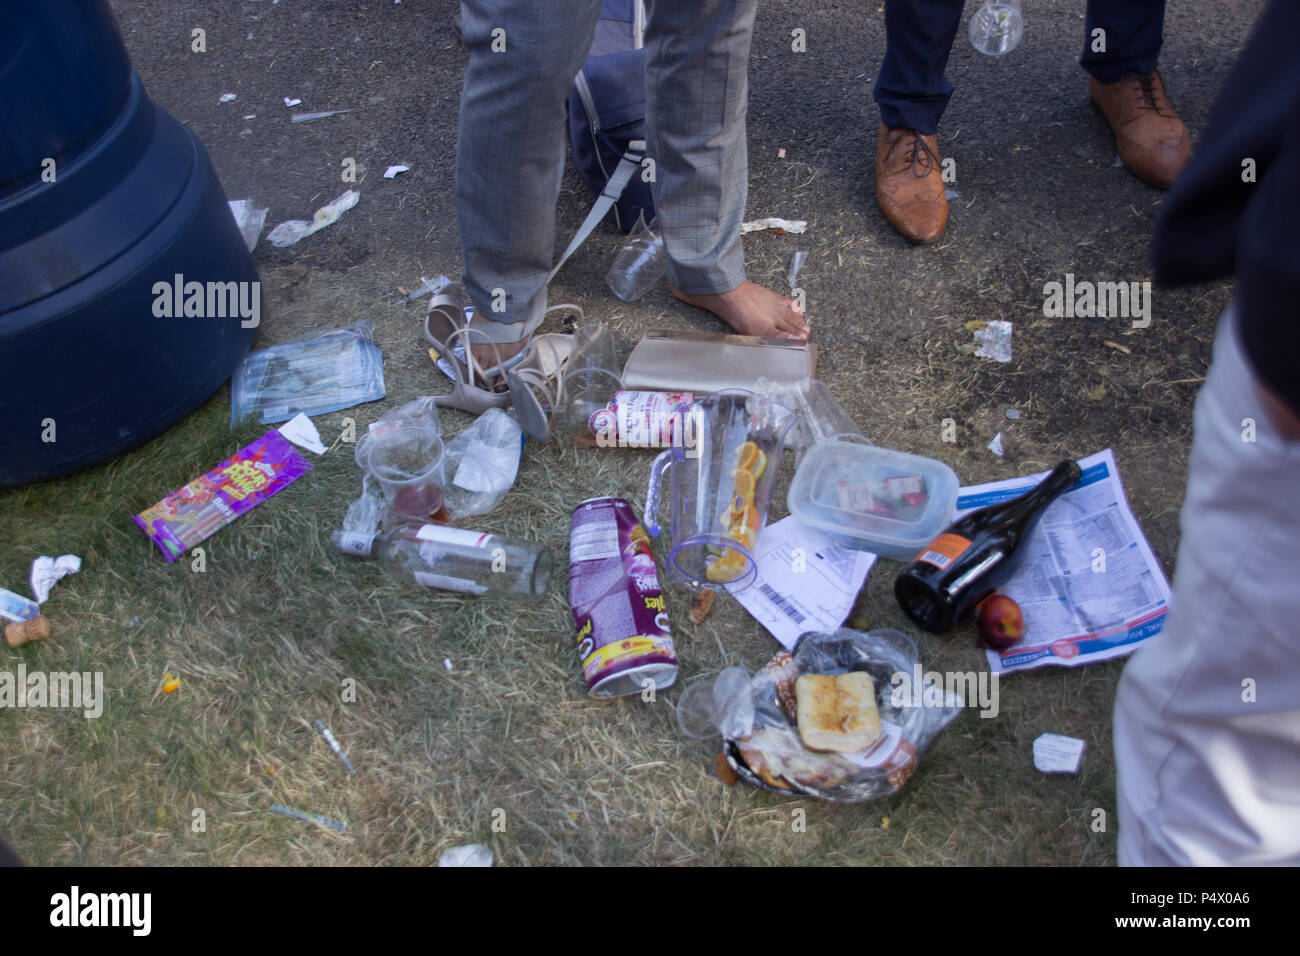 Assorted rubbish including cans and plastic cups thrown on ground and left during Ascot races - Stock Image